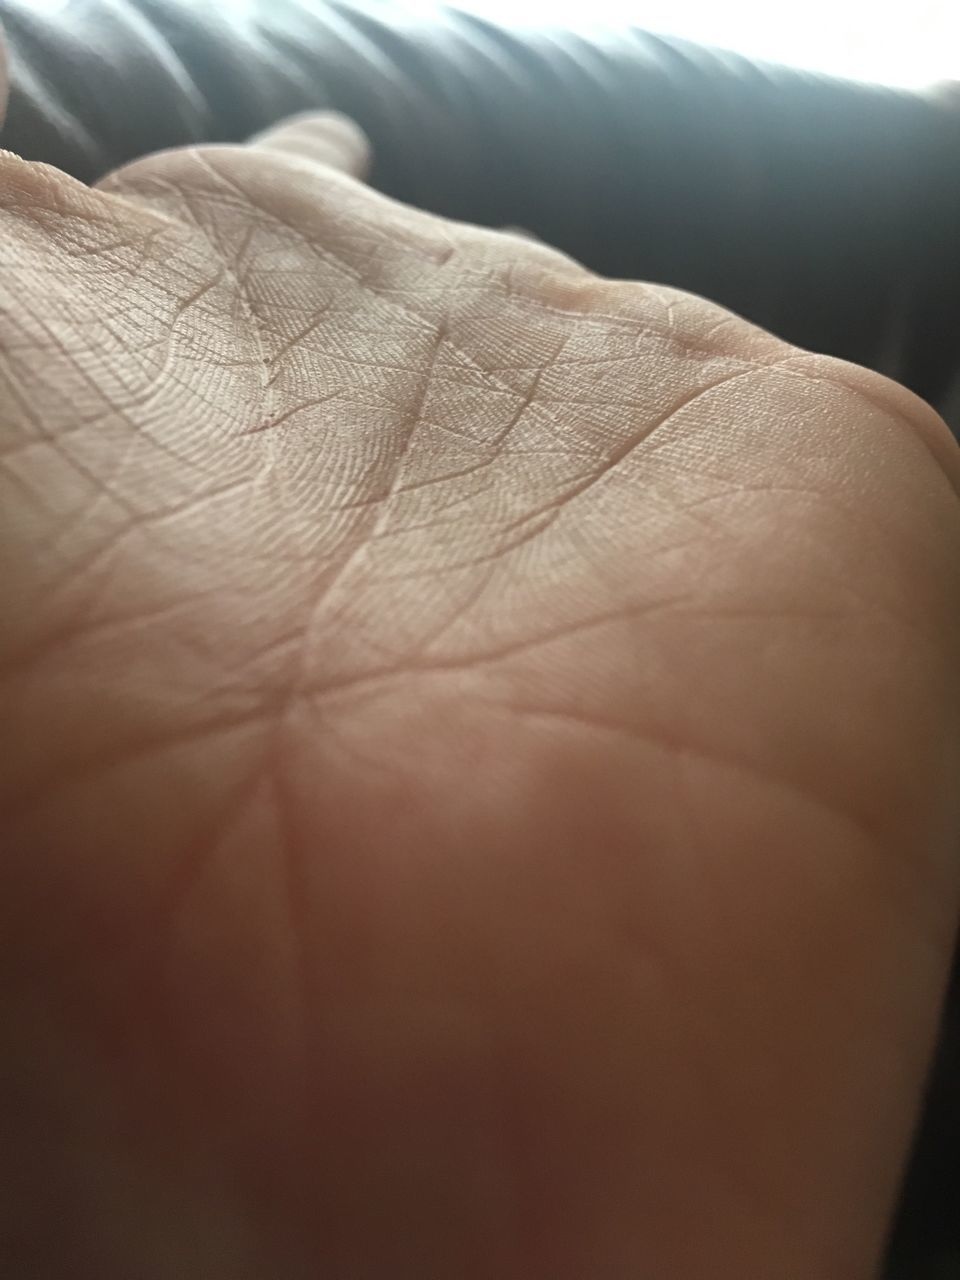 human body part, human skin, one person, real people, human finger, human hand, close-up, unrecognizable person, sensory perception, indoors, day, palm, nature, people